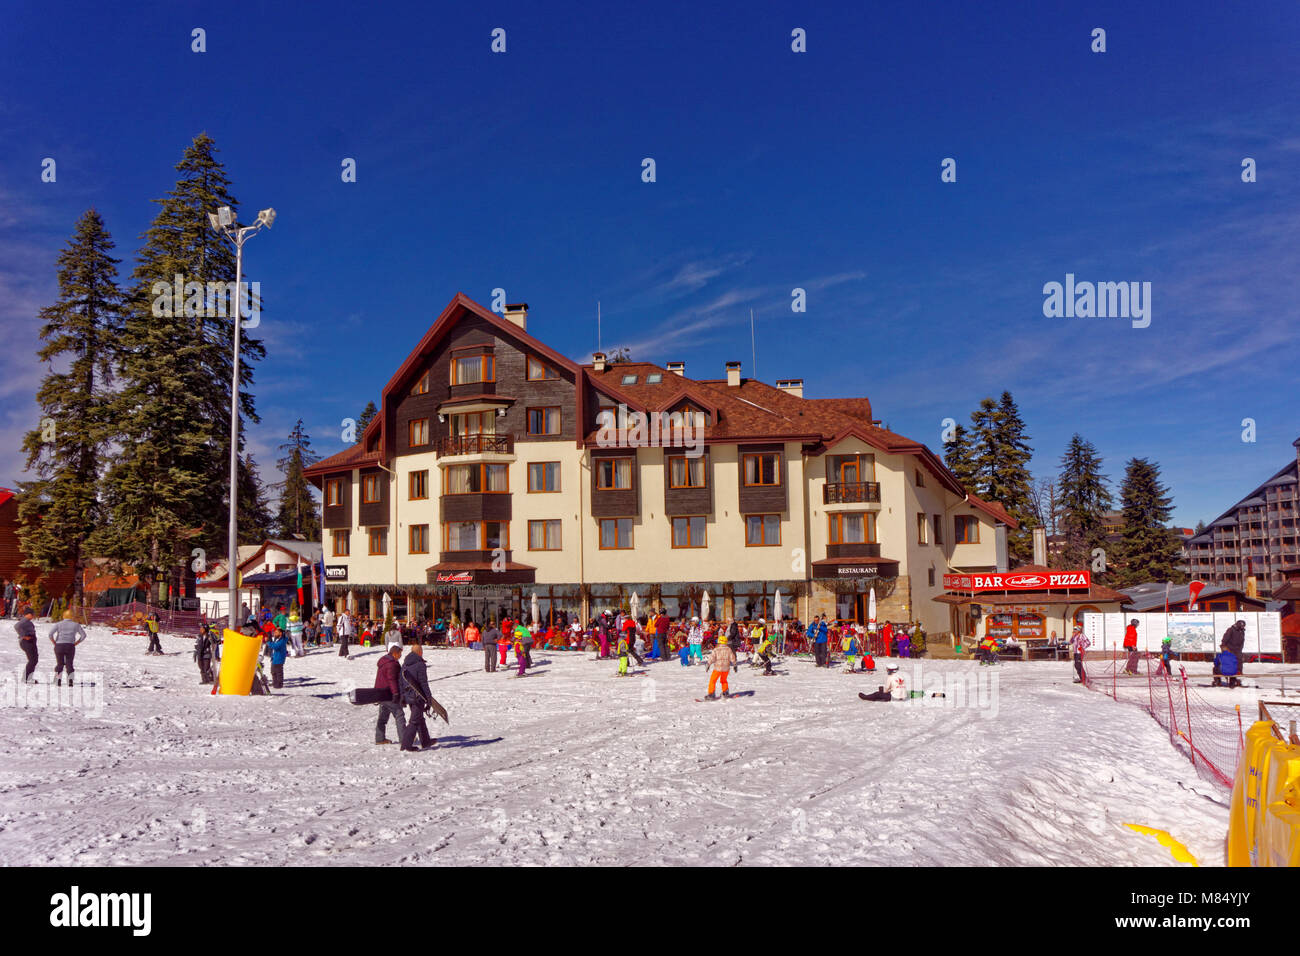 Hotel Ice Angels at Borovets Ski resort, Targovishte, Bulgaria. - Stock Image